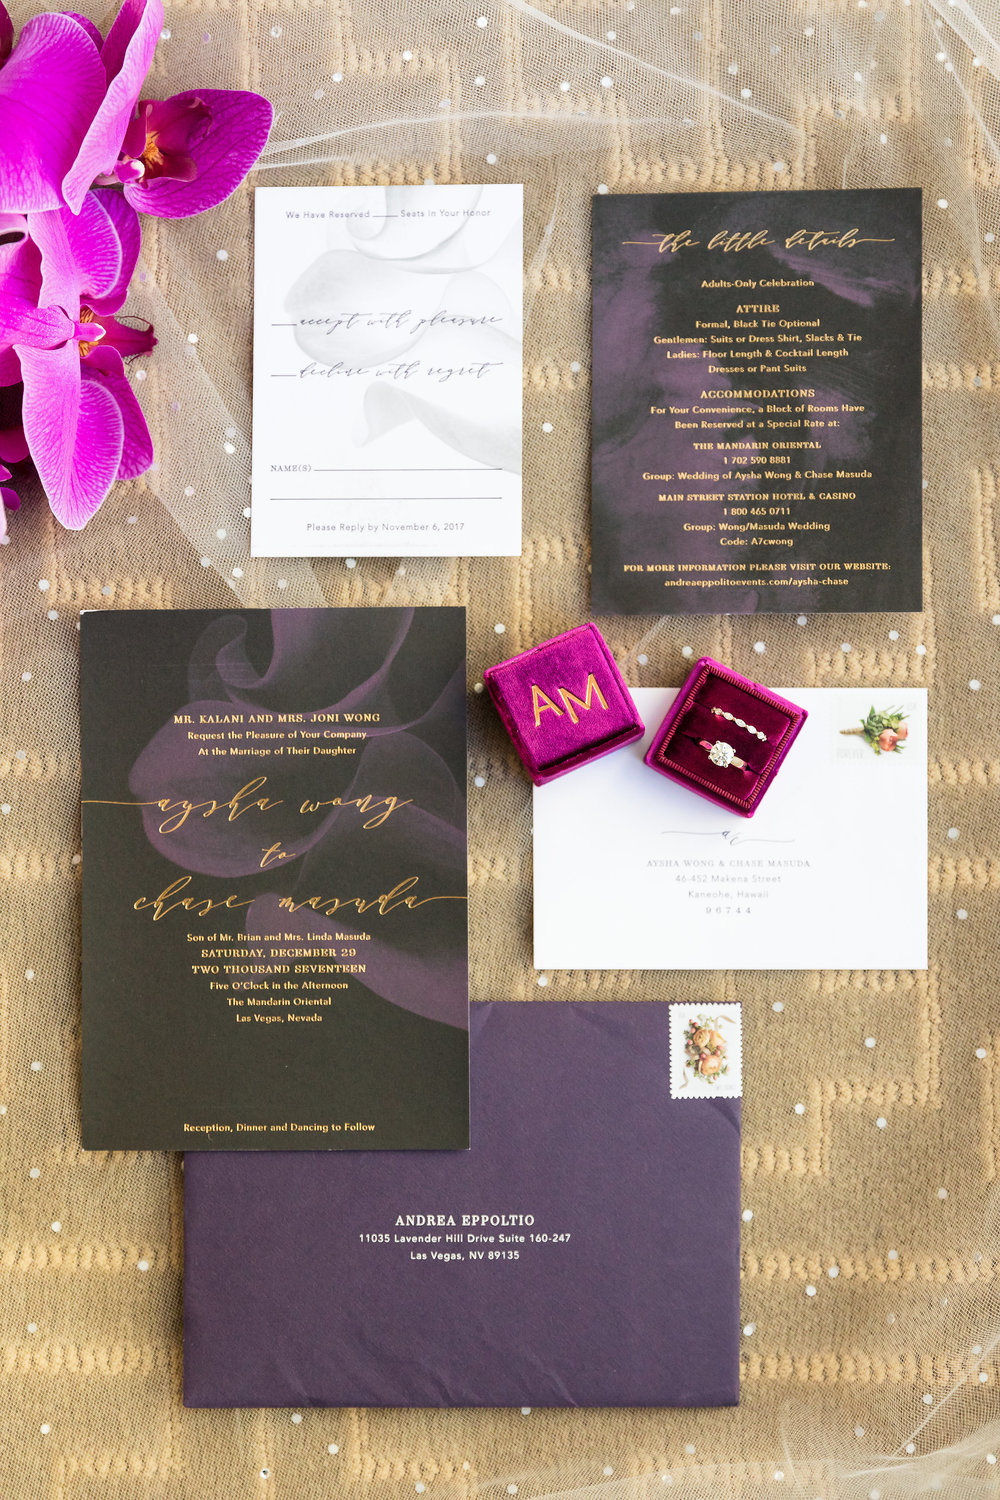 Black and purple invitation suite by Bliss and Bone.  Wedding Planner:  Andrea Eppolito Events  |   Photography  Brian Leahy   | |  Invitations by Bliss and Bone